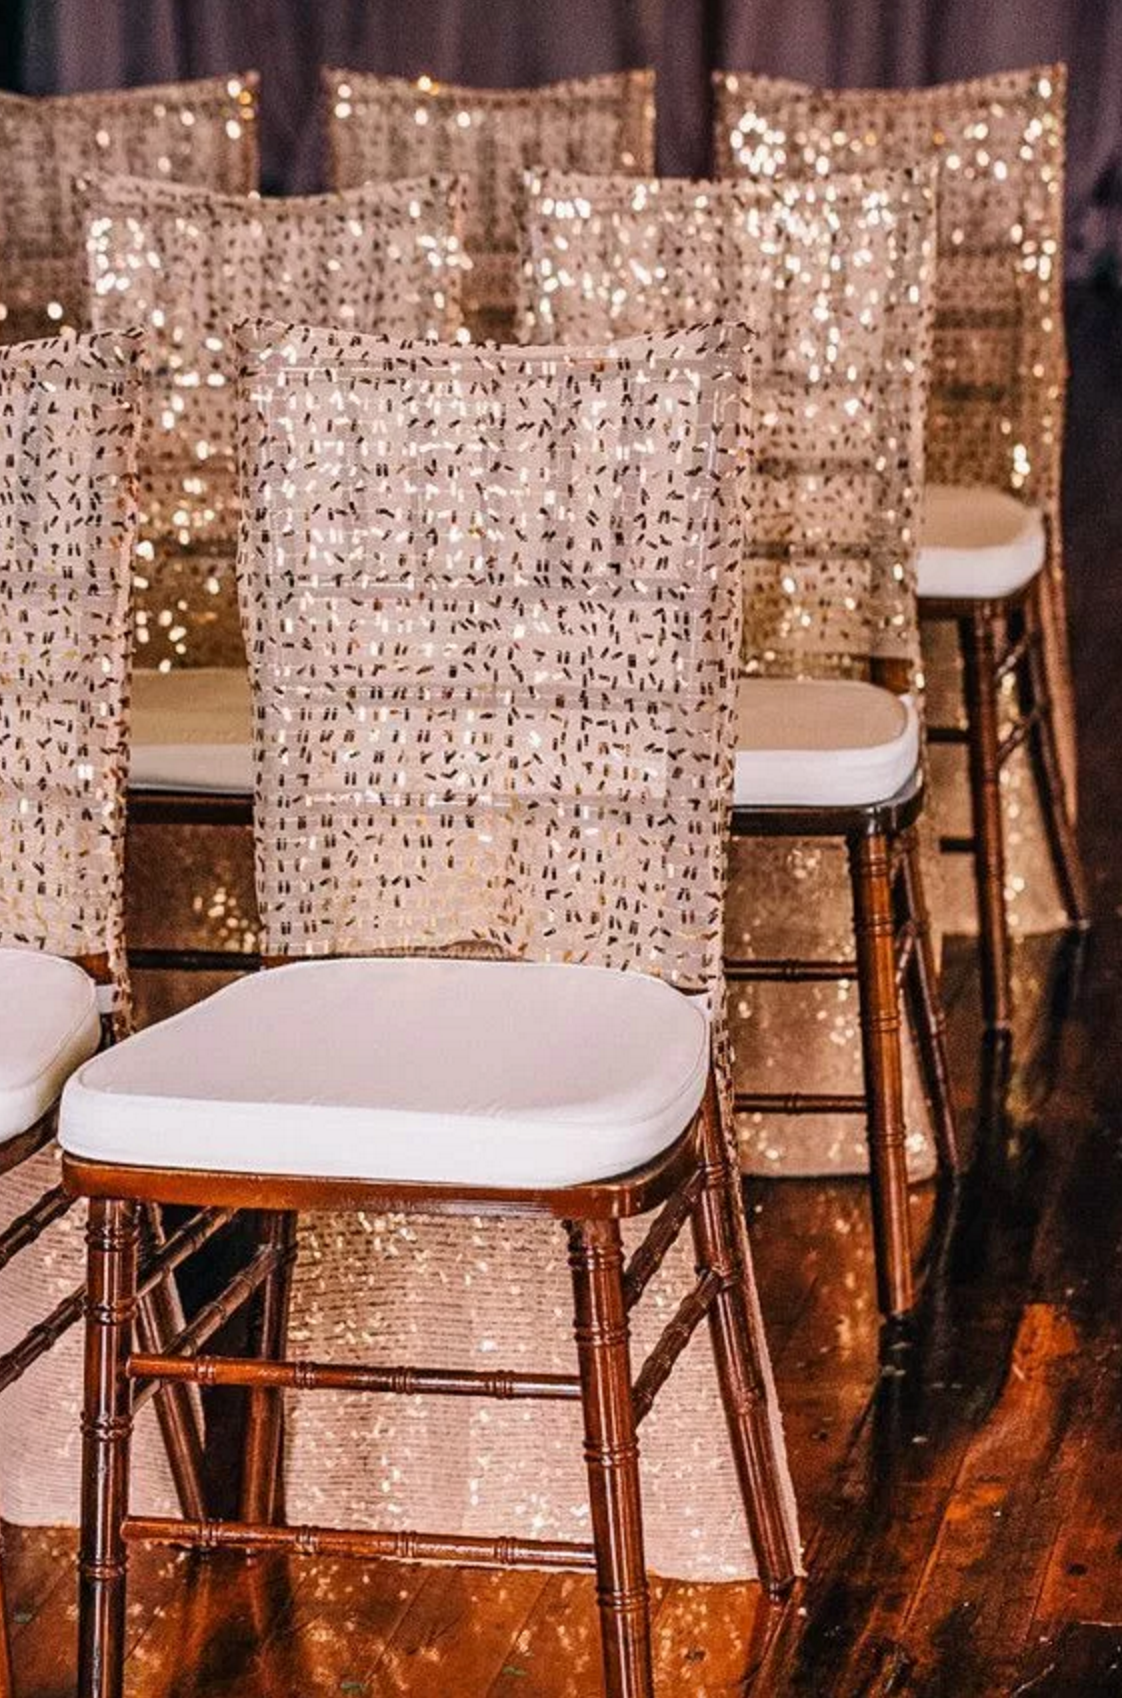 For Everyday Use, Or For An Outside Gathering, Seat Covers Are A Very  Versatile Way To Make Your Folding Chairs Look Classy And Perfectly Match  Your Color ...